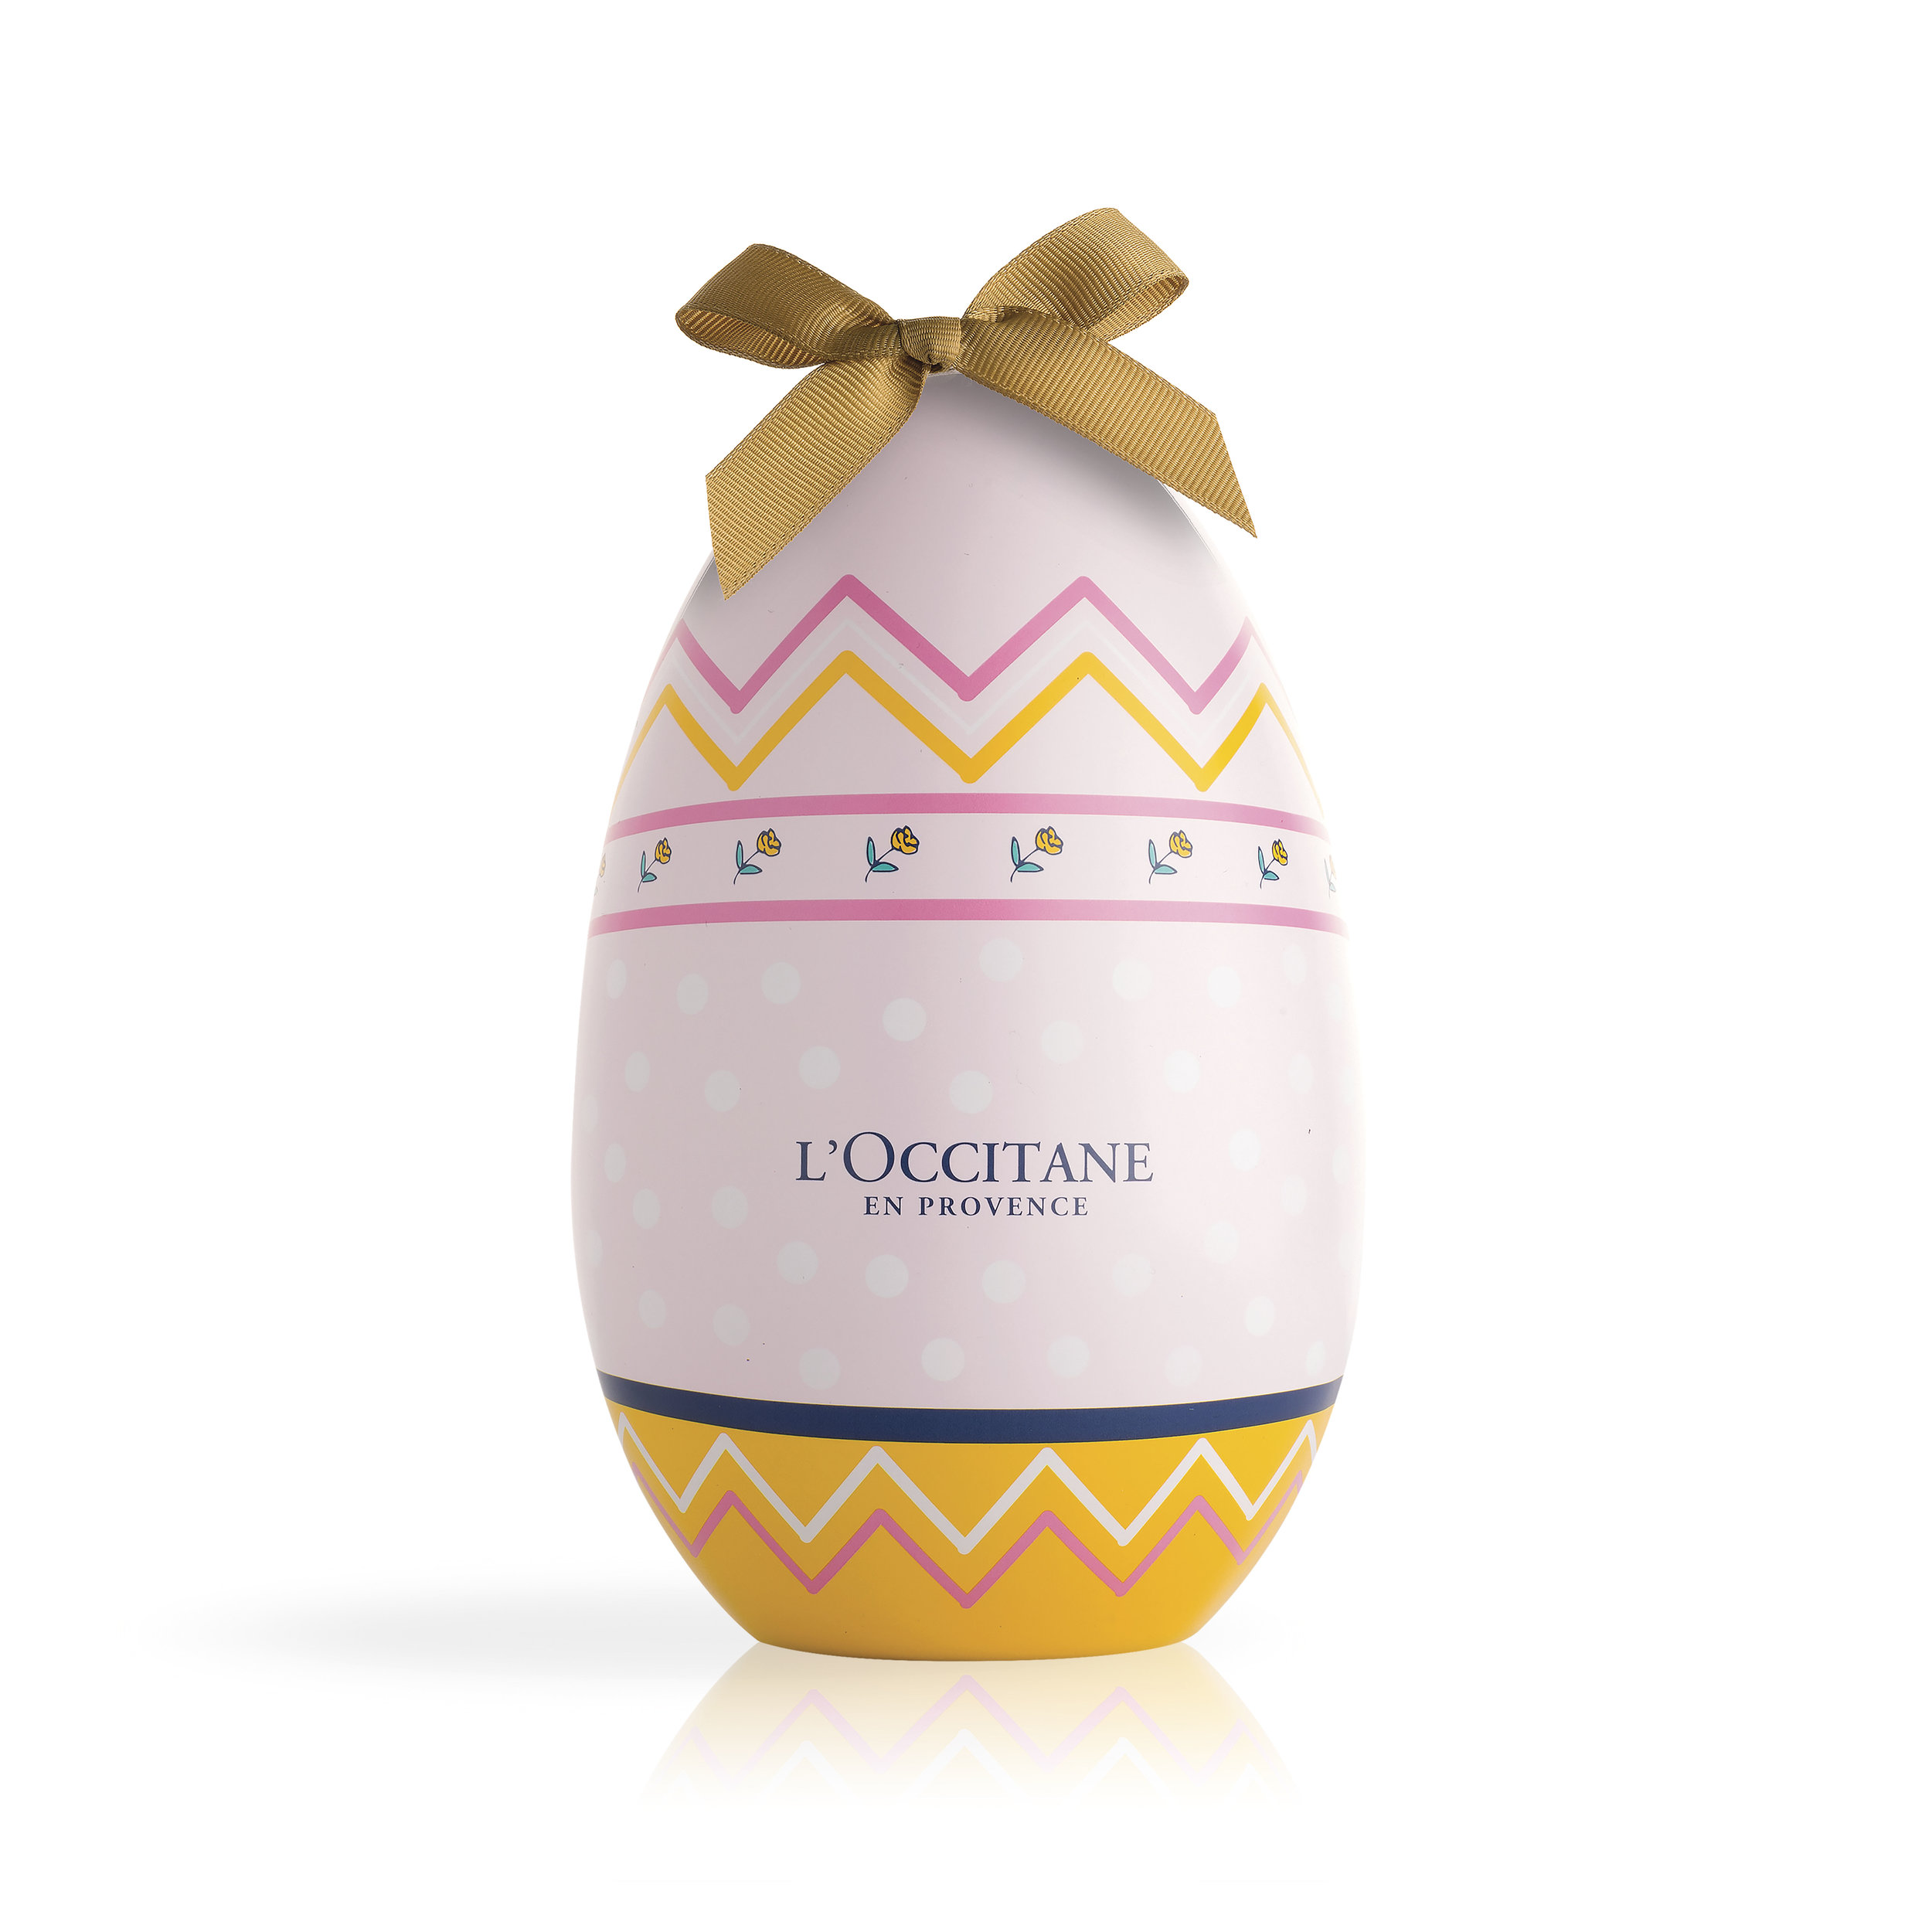 L'OCCITANE Cherry Blossom Easter Egg.jpeg